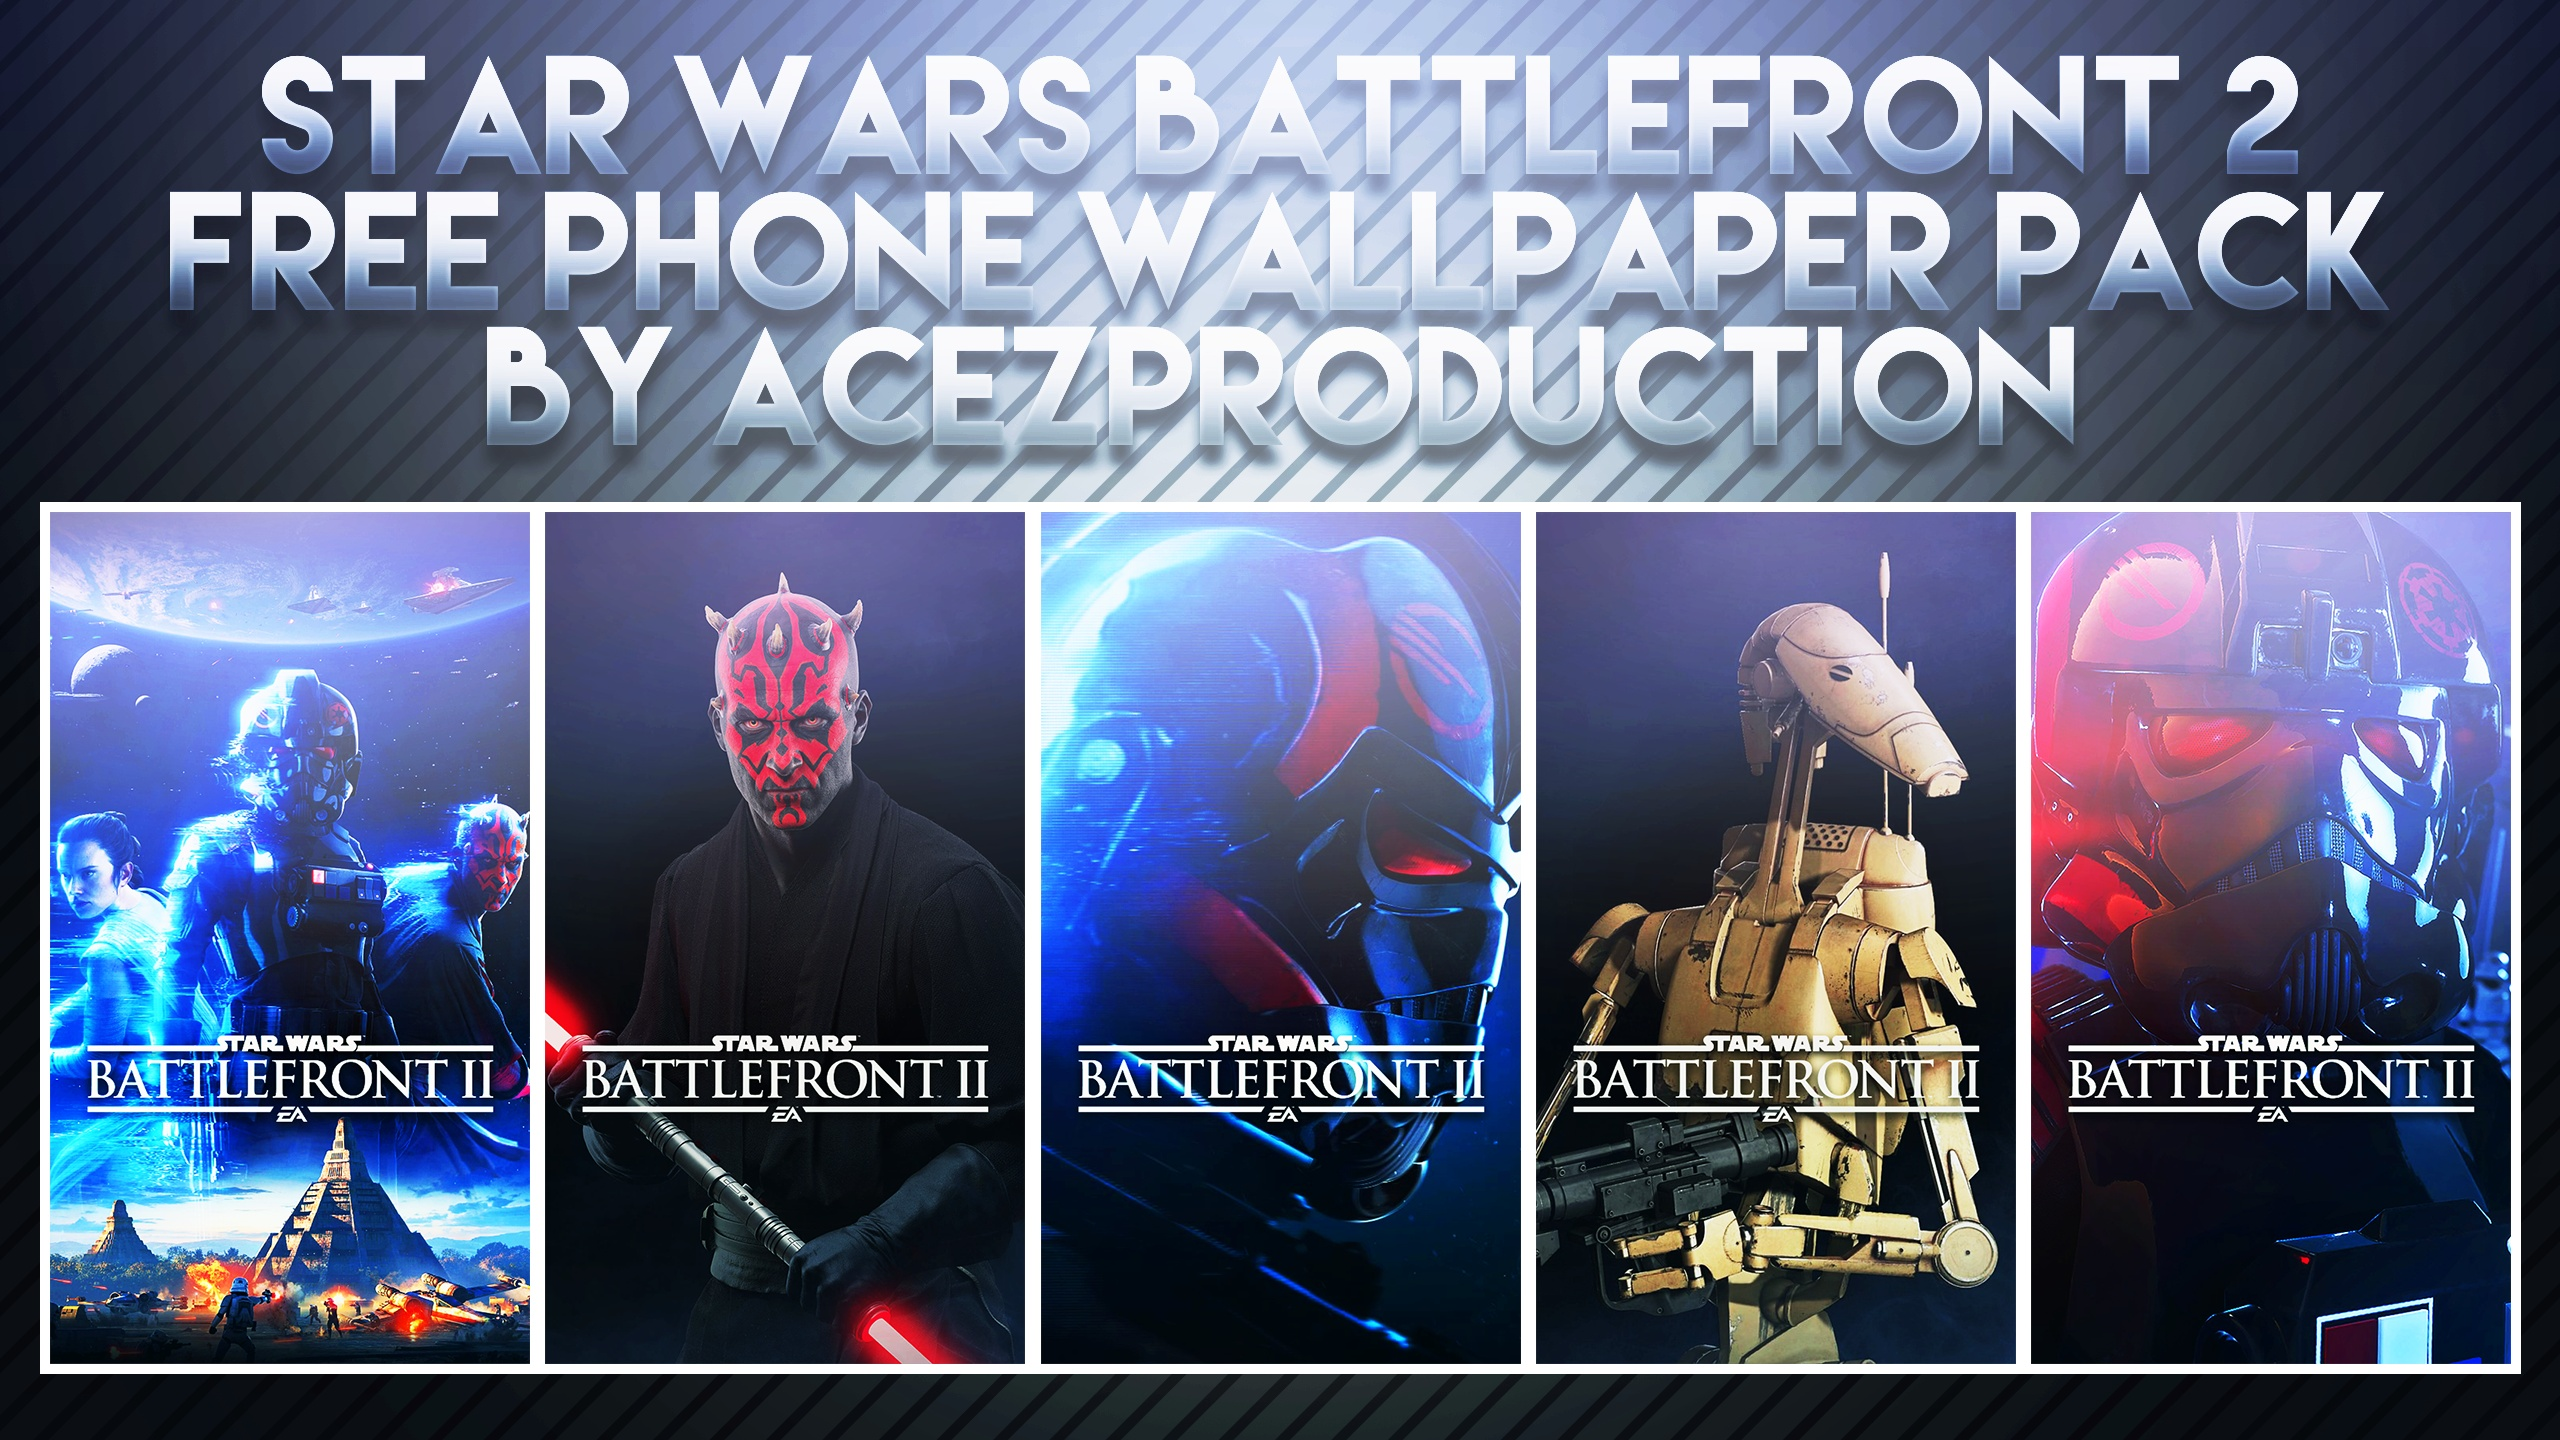 Star Wars Battlefront 2 Phone Wallpaper Pack Free Download